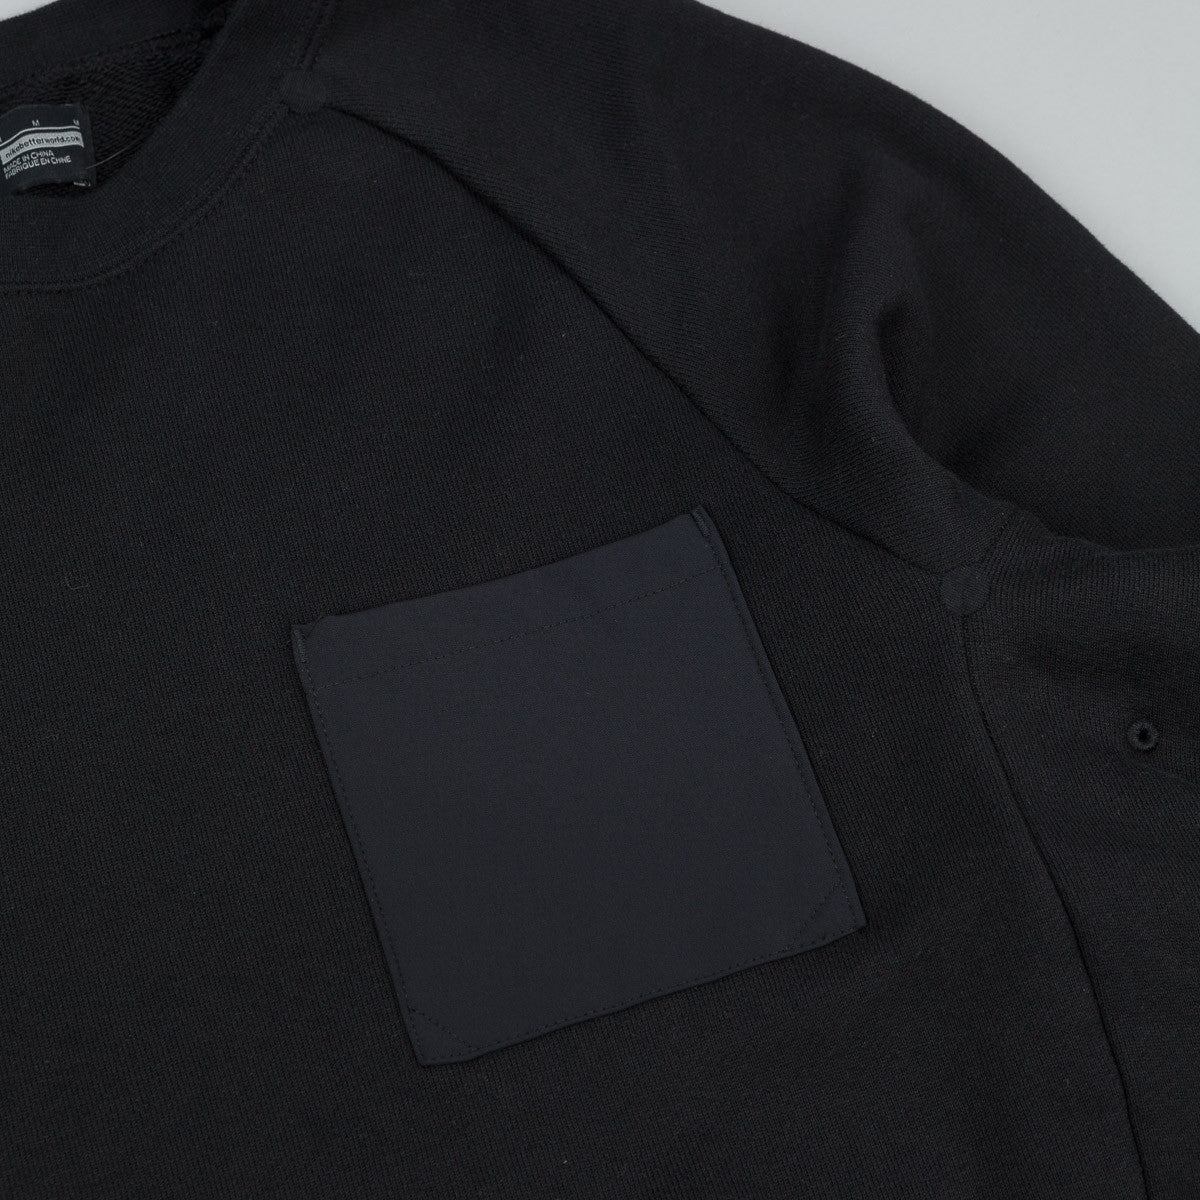 Nike SB Everett Overlay Pocket Crew Neck Sweatshirt - Black / Black